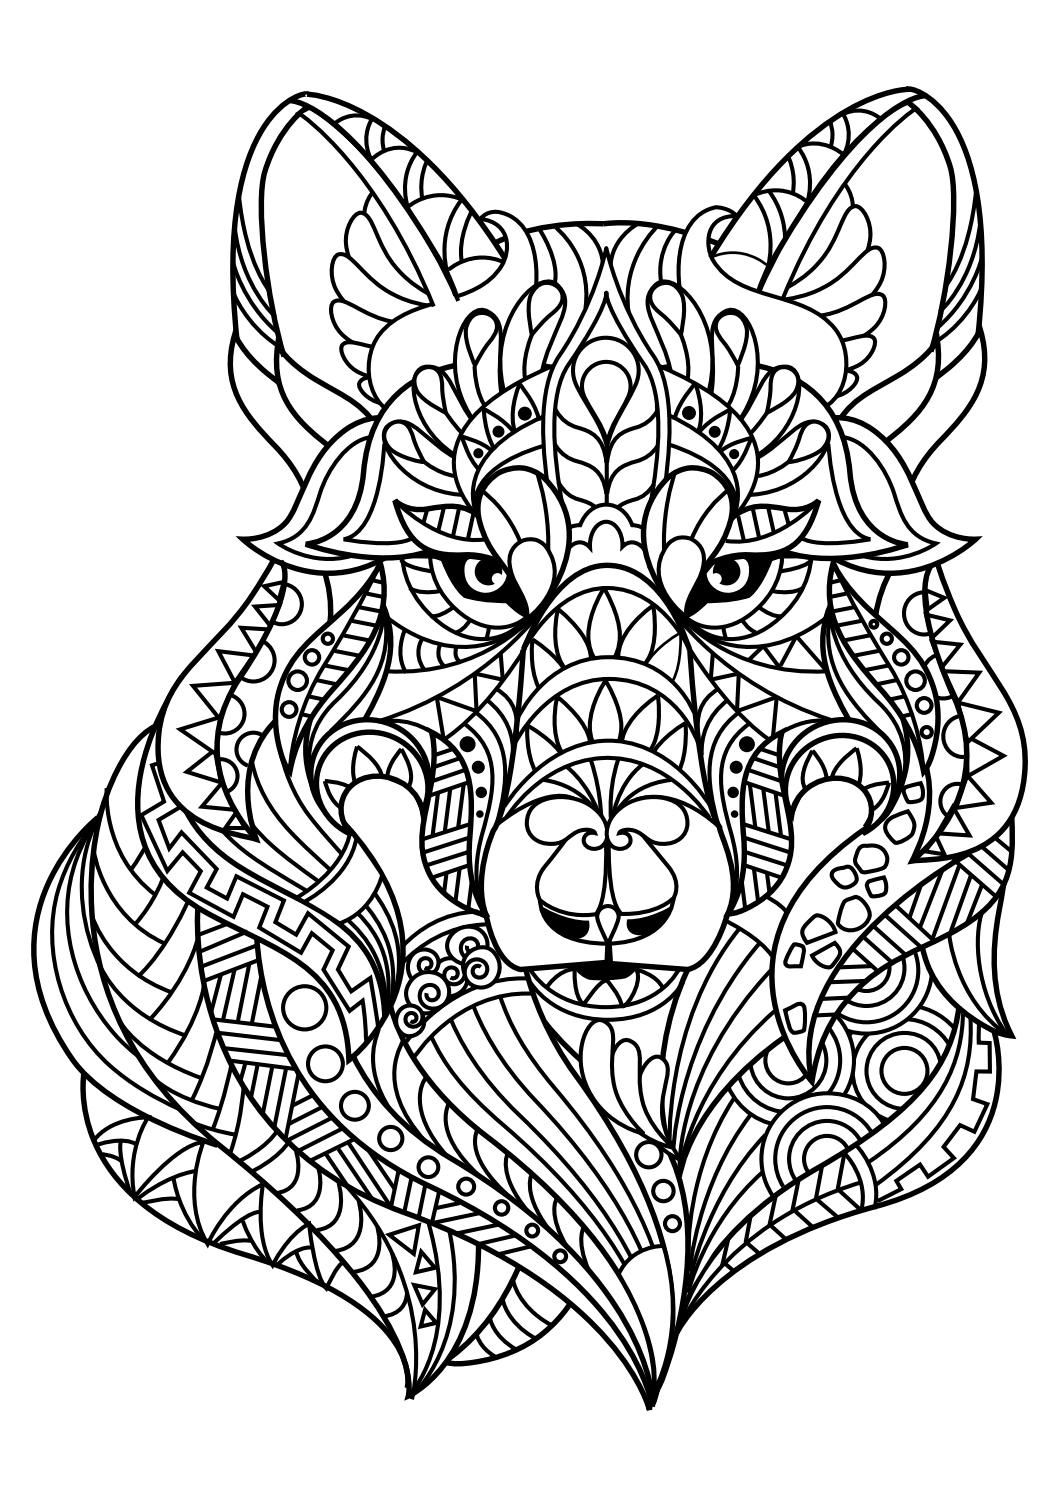 Animal coloring pages pdf Coloring Animals Coloriage